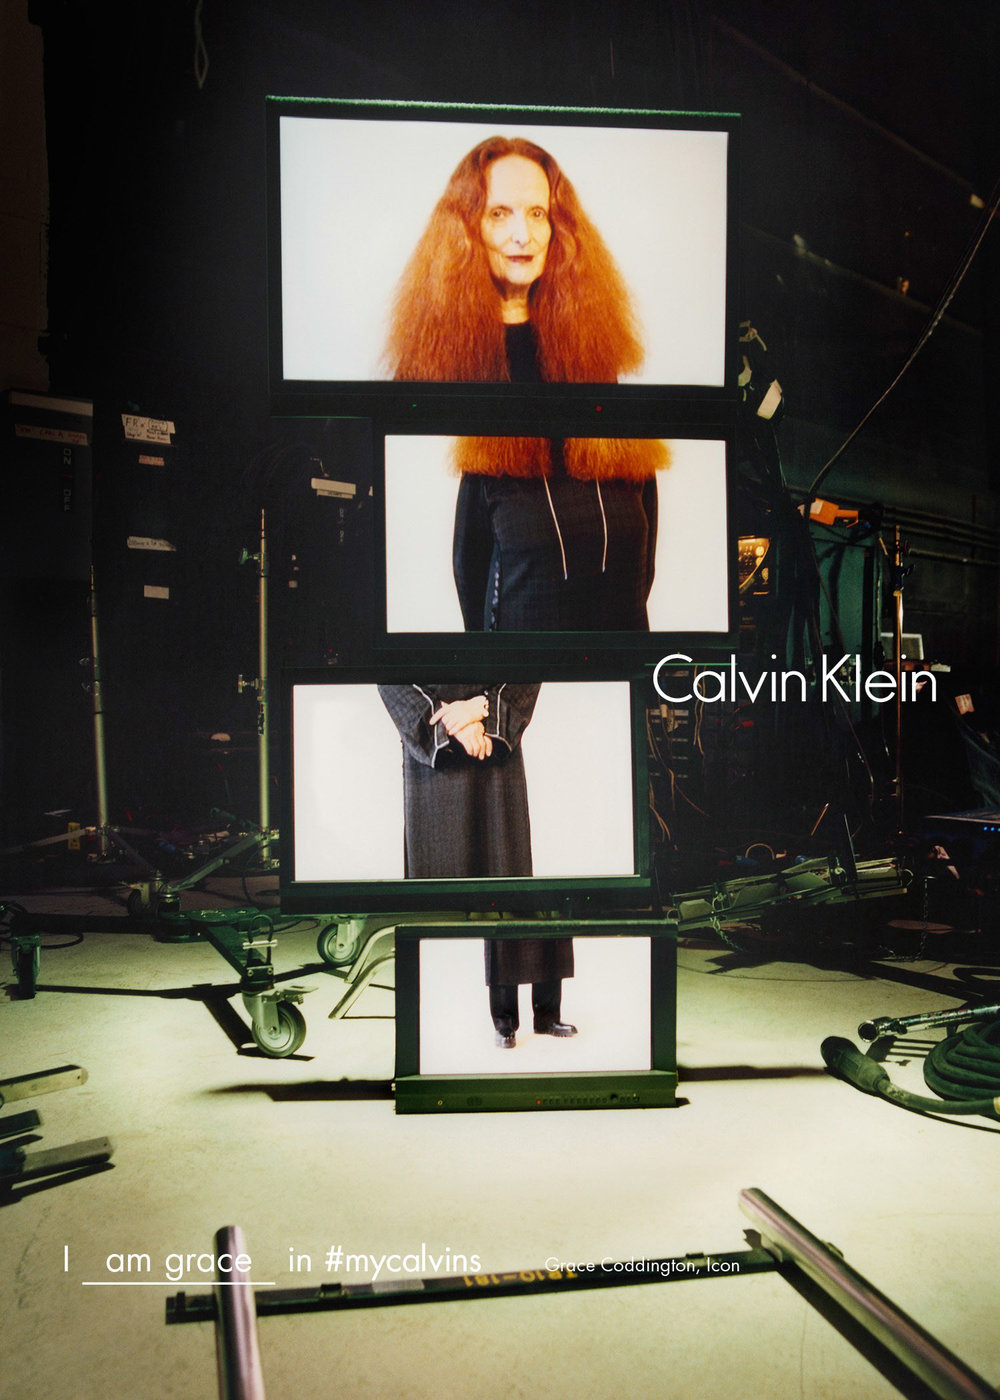 so-it-goes-calvin-klein-aw16-campaign-11.jpg